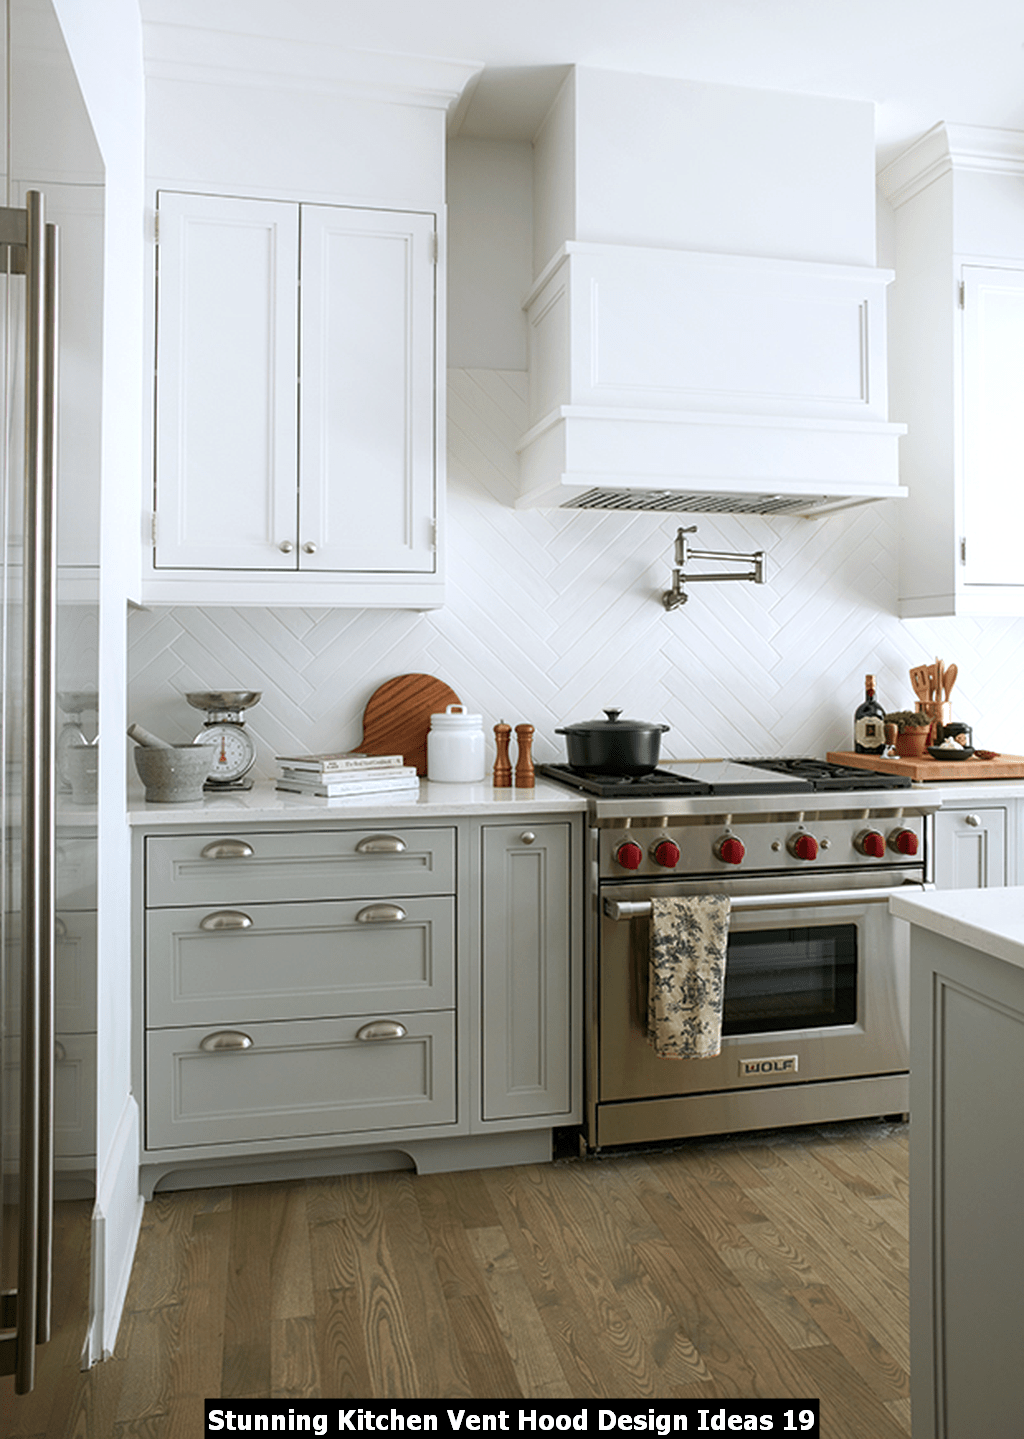 Stunning Kitchen Vent Hood Design Ideas 19